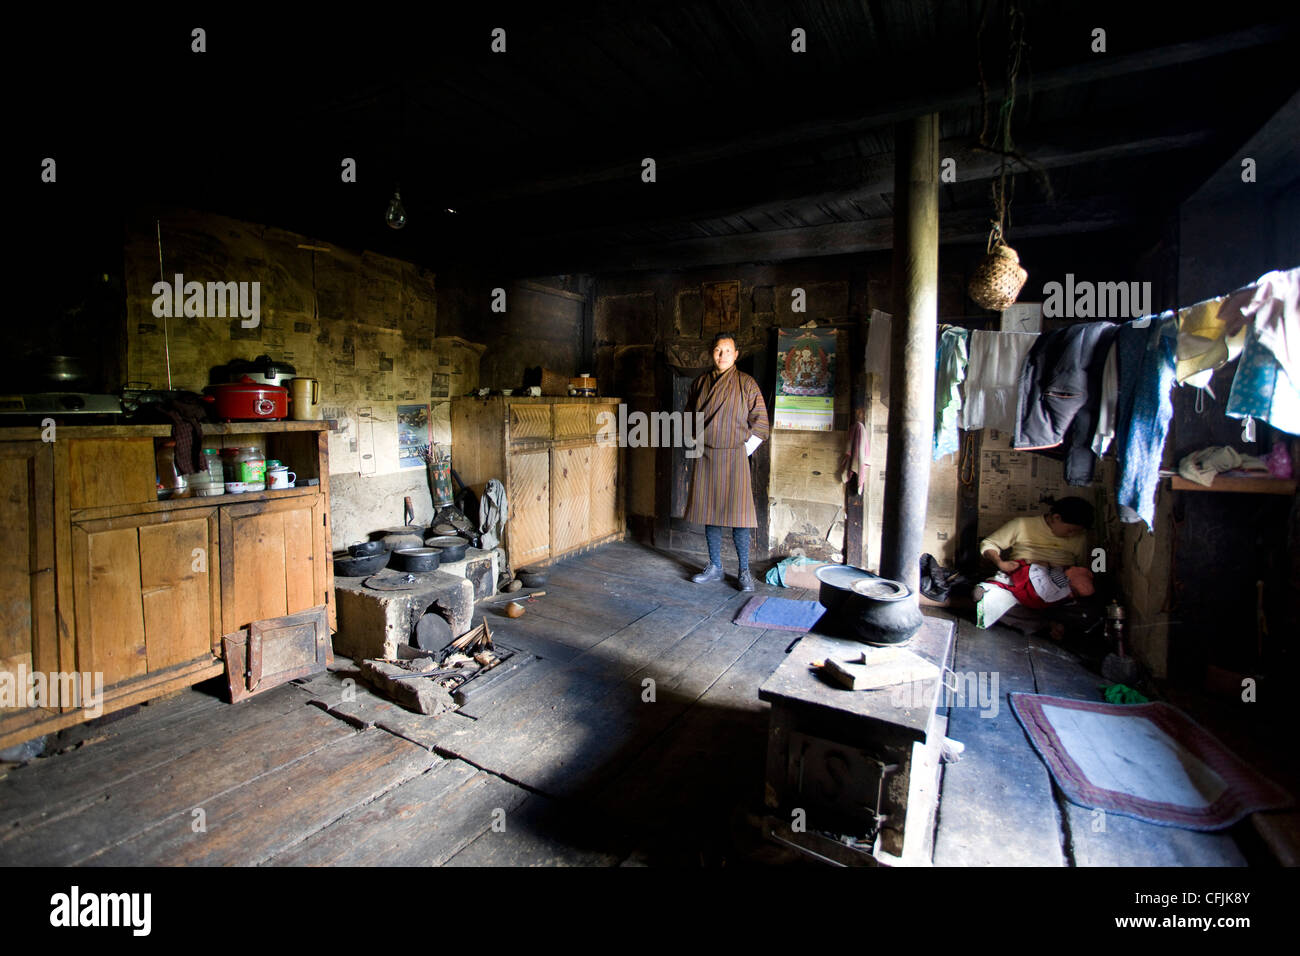 Local man with his wife and bady, Jakar, Bumthang, Bhutan, Asia - Stock Image